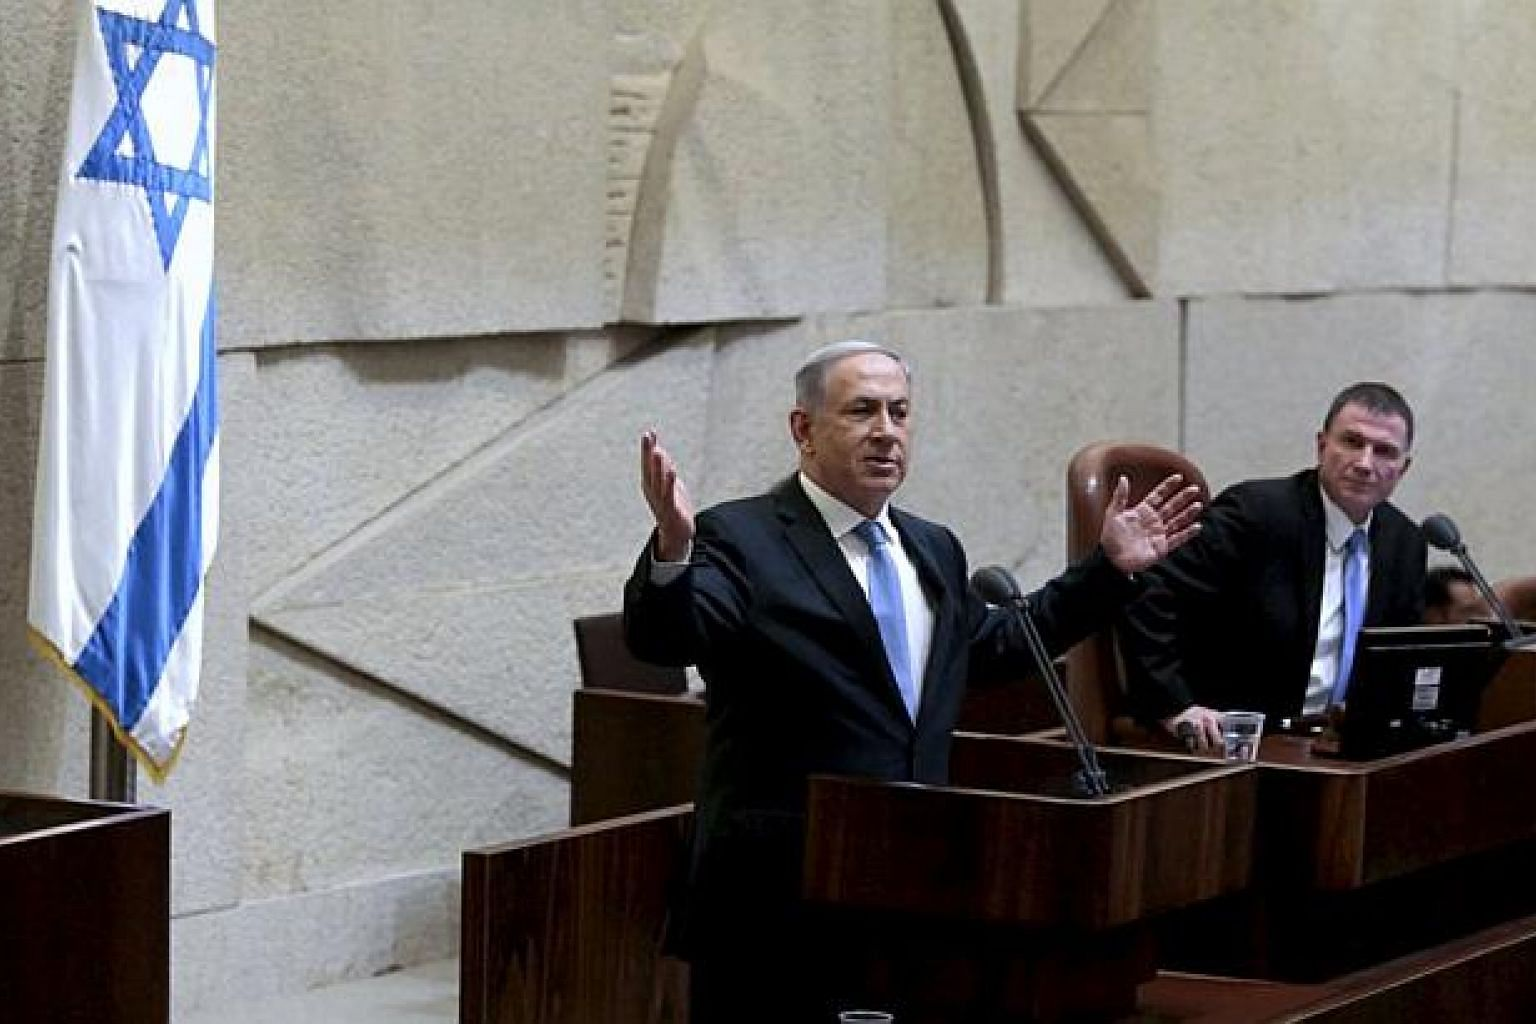 Israeli Prime Minister Benjamin Netanyahu delivers a speech in the Knesset, the Israeli parliament, before his new government is sworn in following the mid-March general elections, in Jerusalem May 14, 2015. -- PHOTO: REUTERS